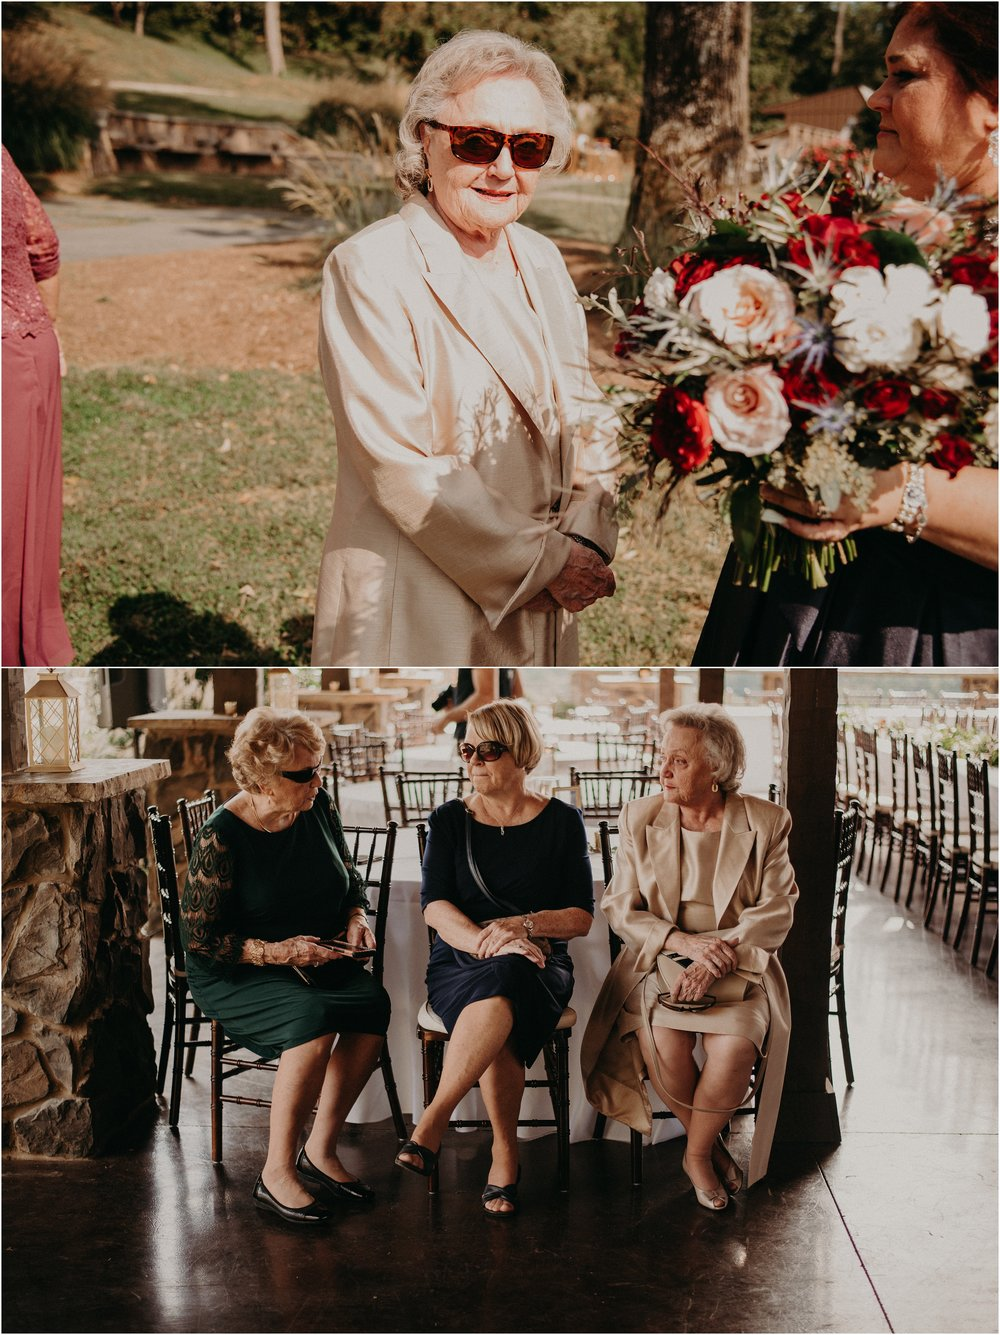 Grandmothers of bride and groom sit together in the shade